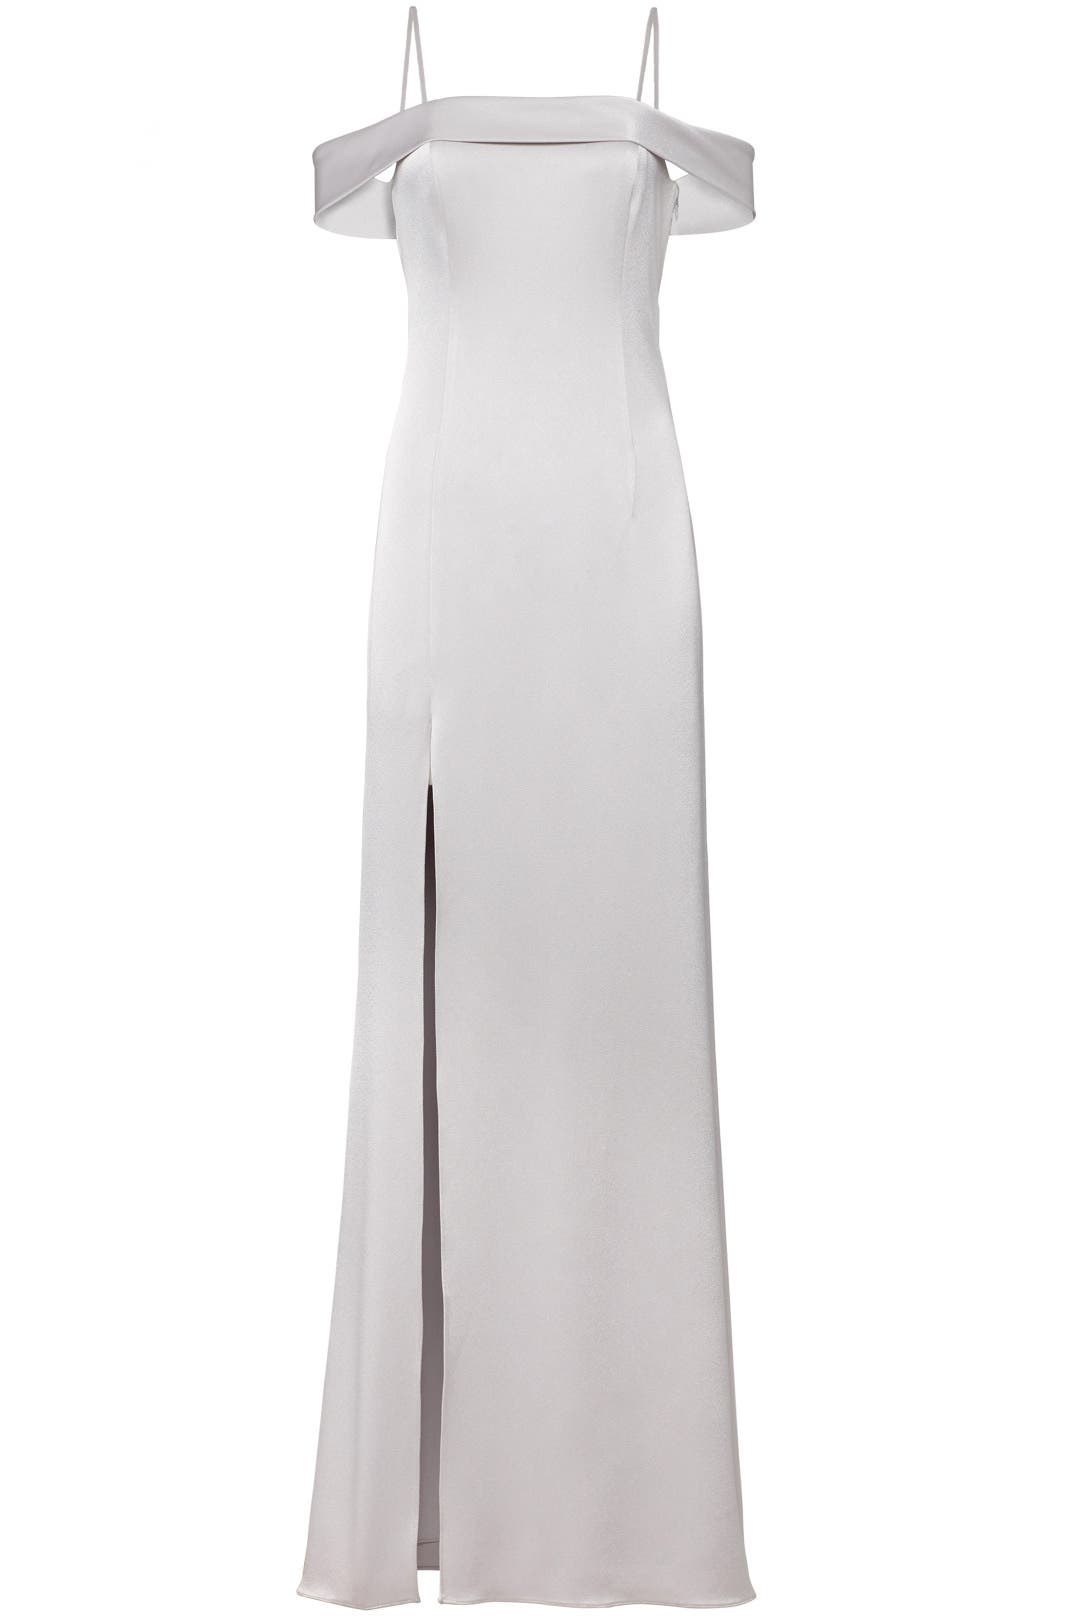 Fog Column Gown by Halston Heritage for $70 | Rent the Runway